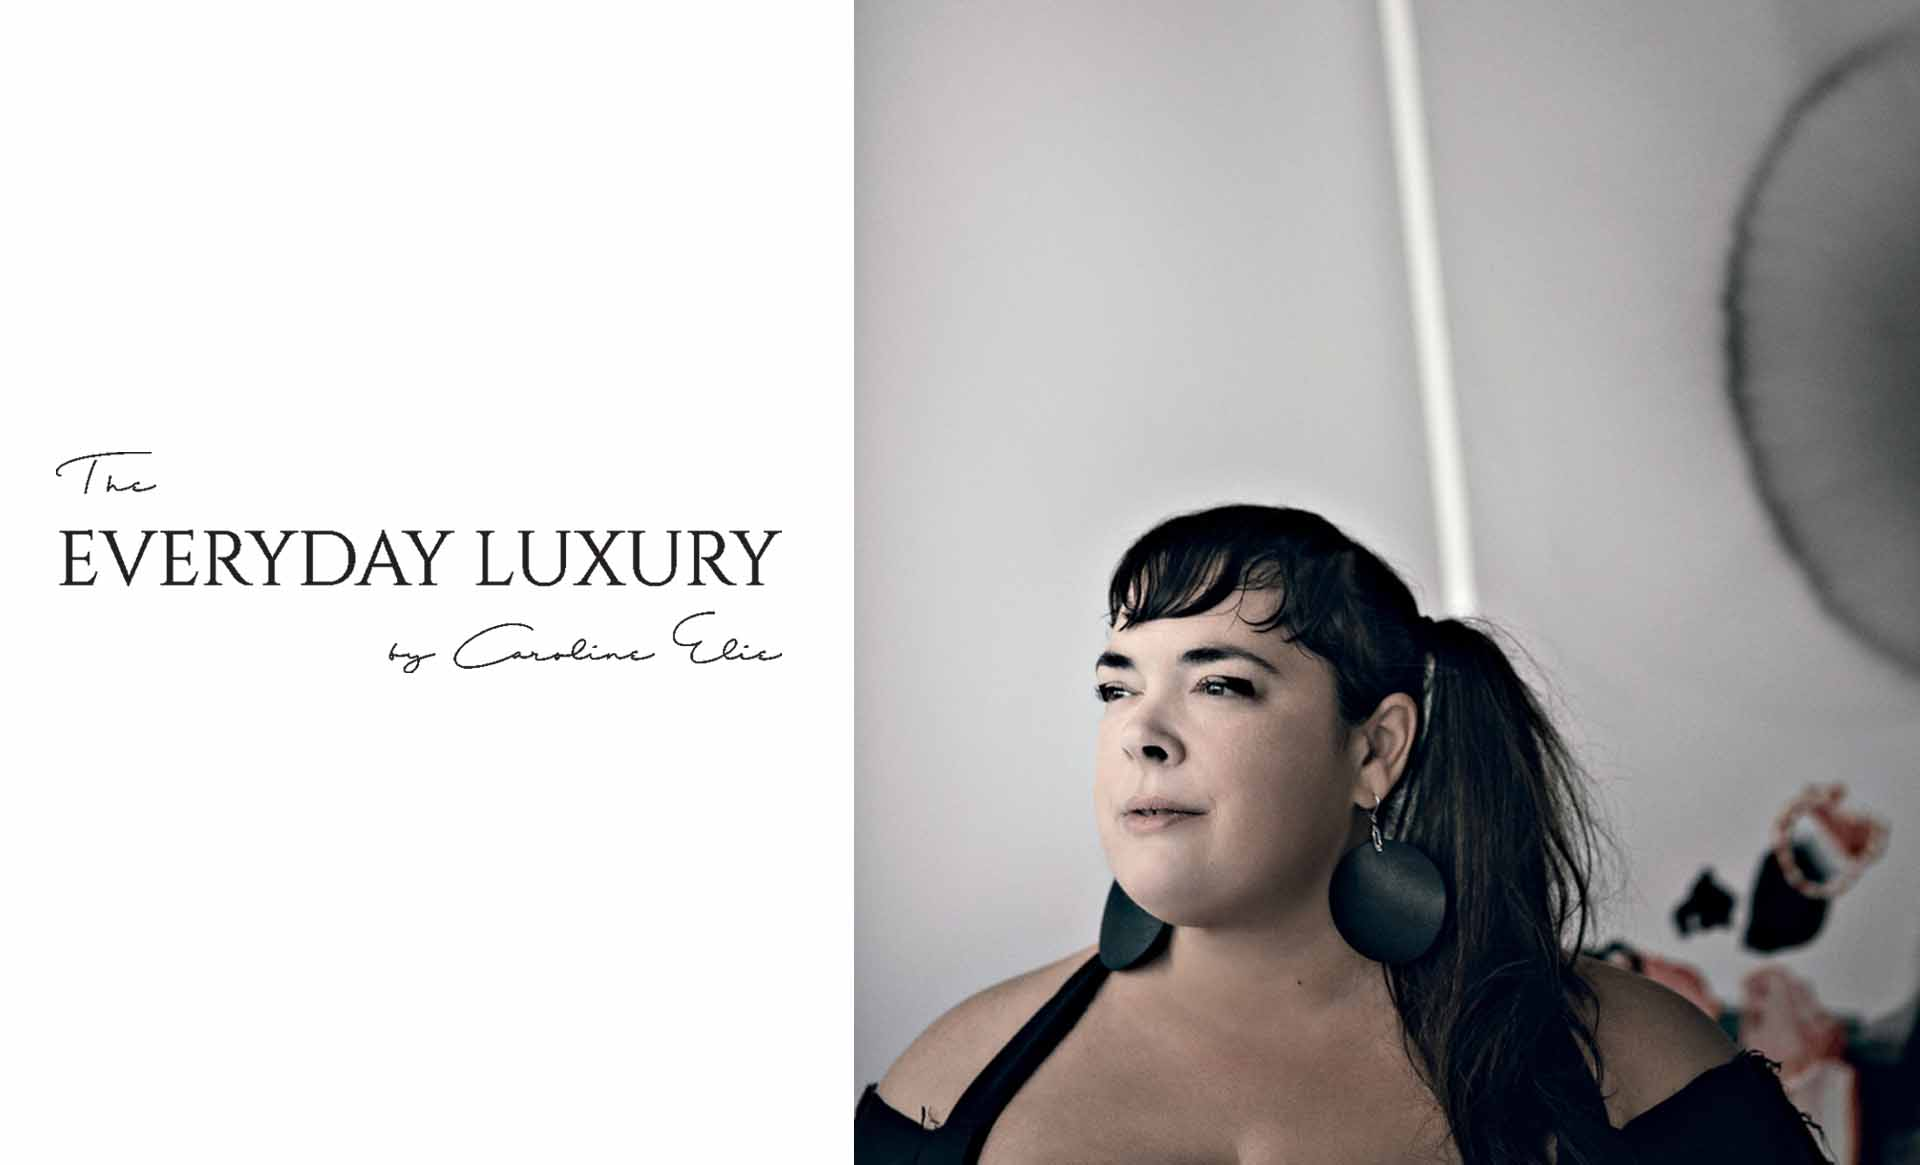 Anne-Marie Chagnon's interview for the web site The Everyday Luxury